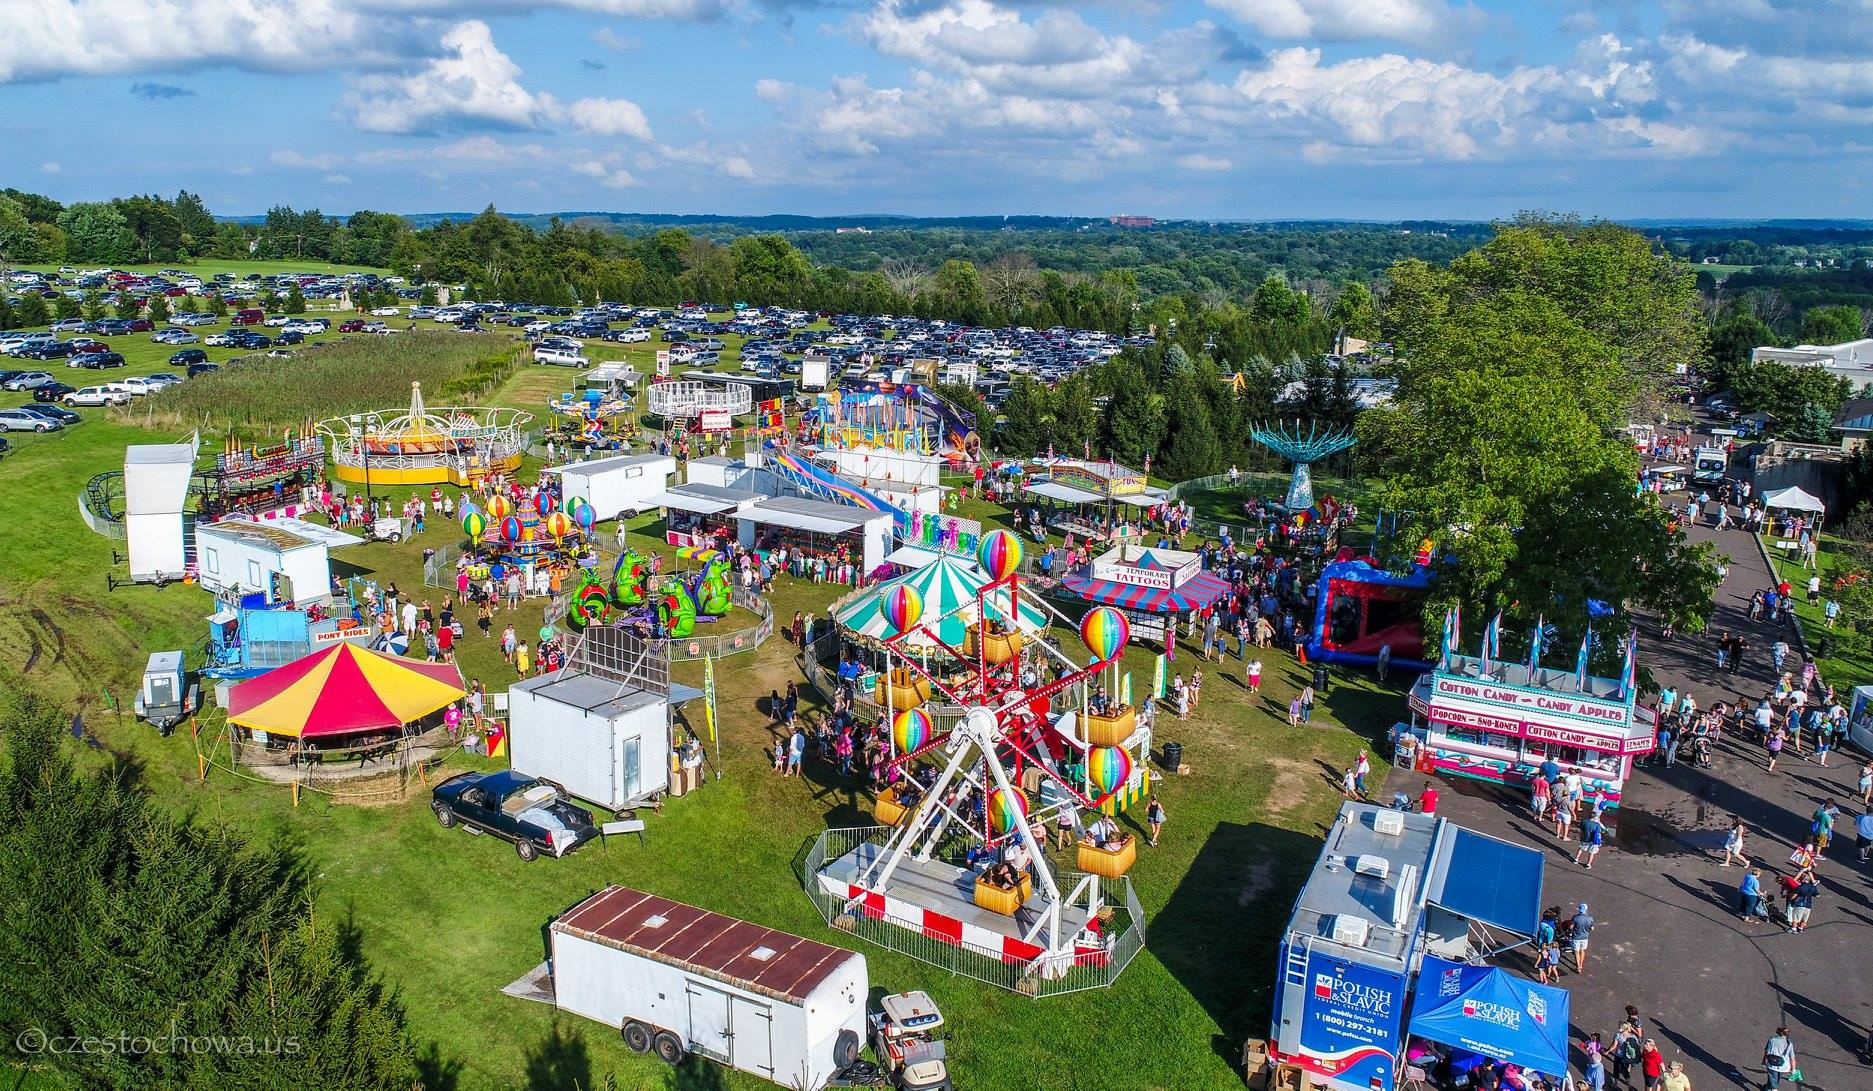 The Polish-American Family Festival & Country Fair 2019 in Doylestown, PA